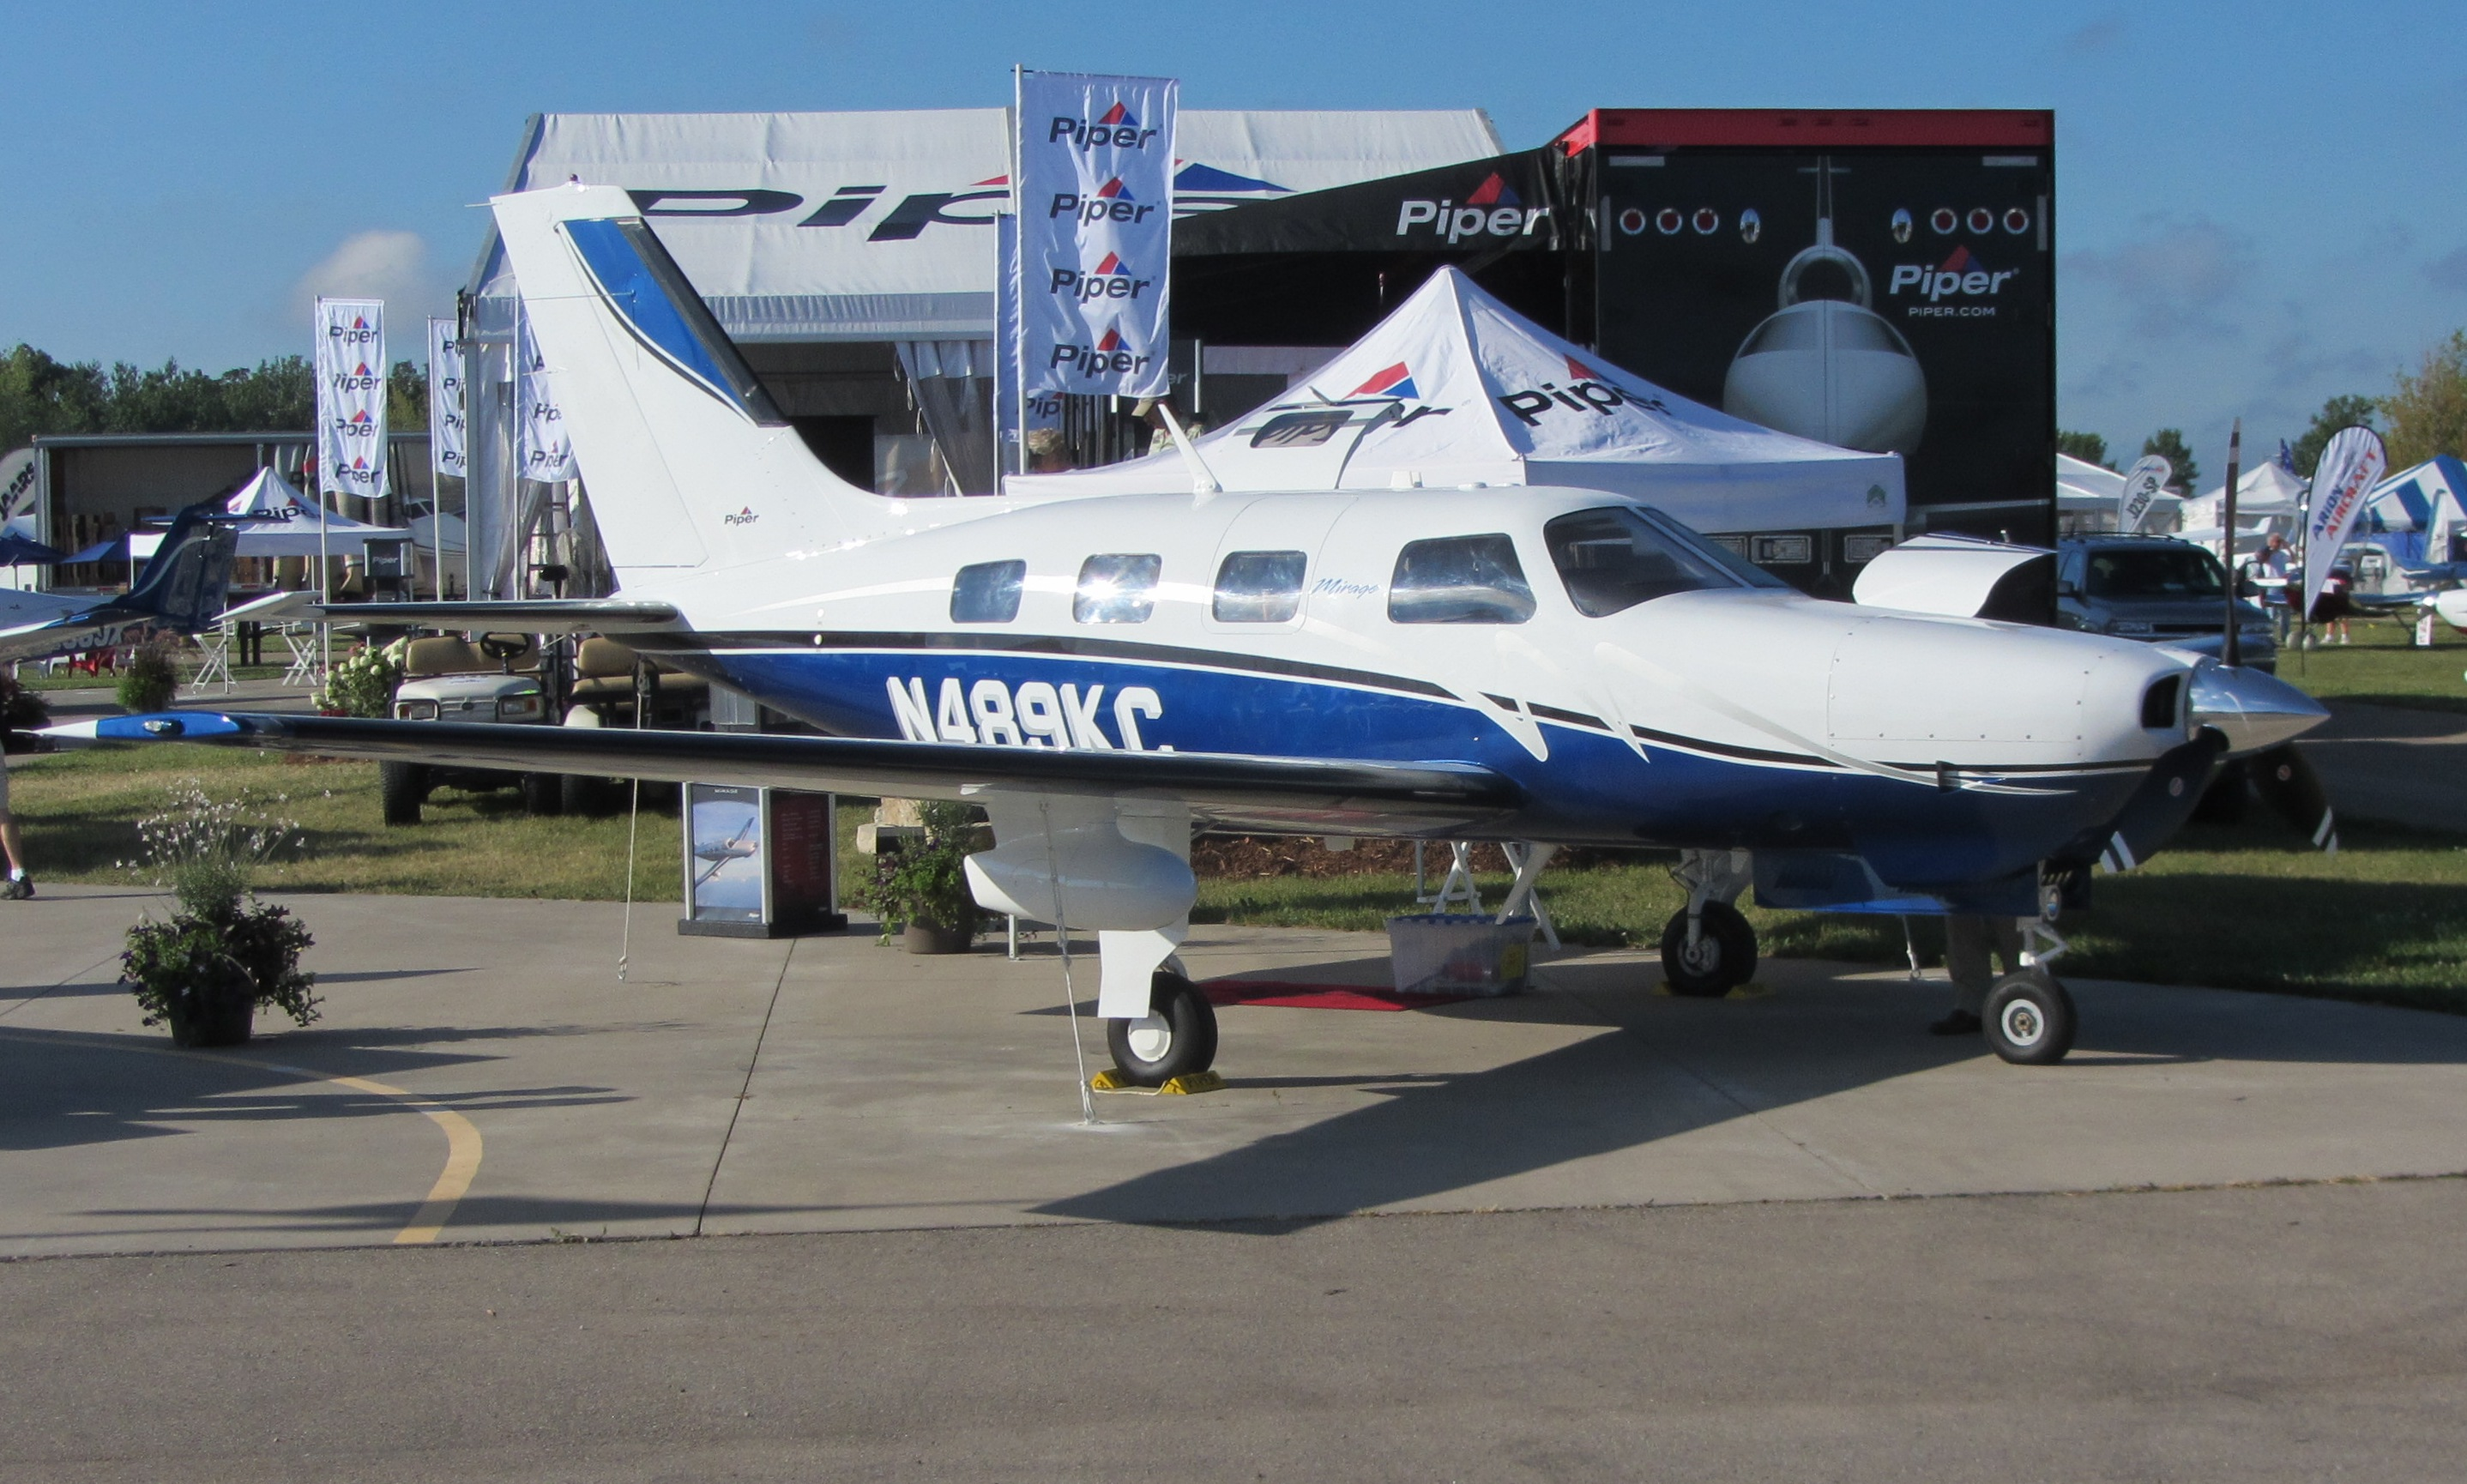 Piper PA-46 Malibu/Malibu Mirage next